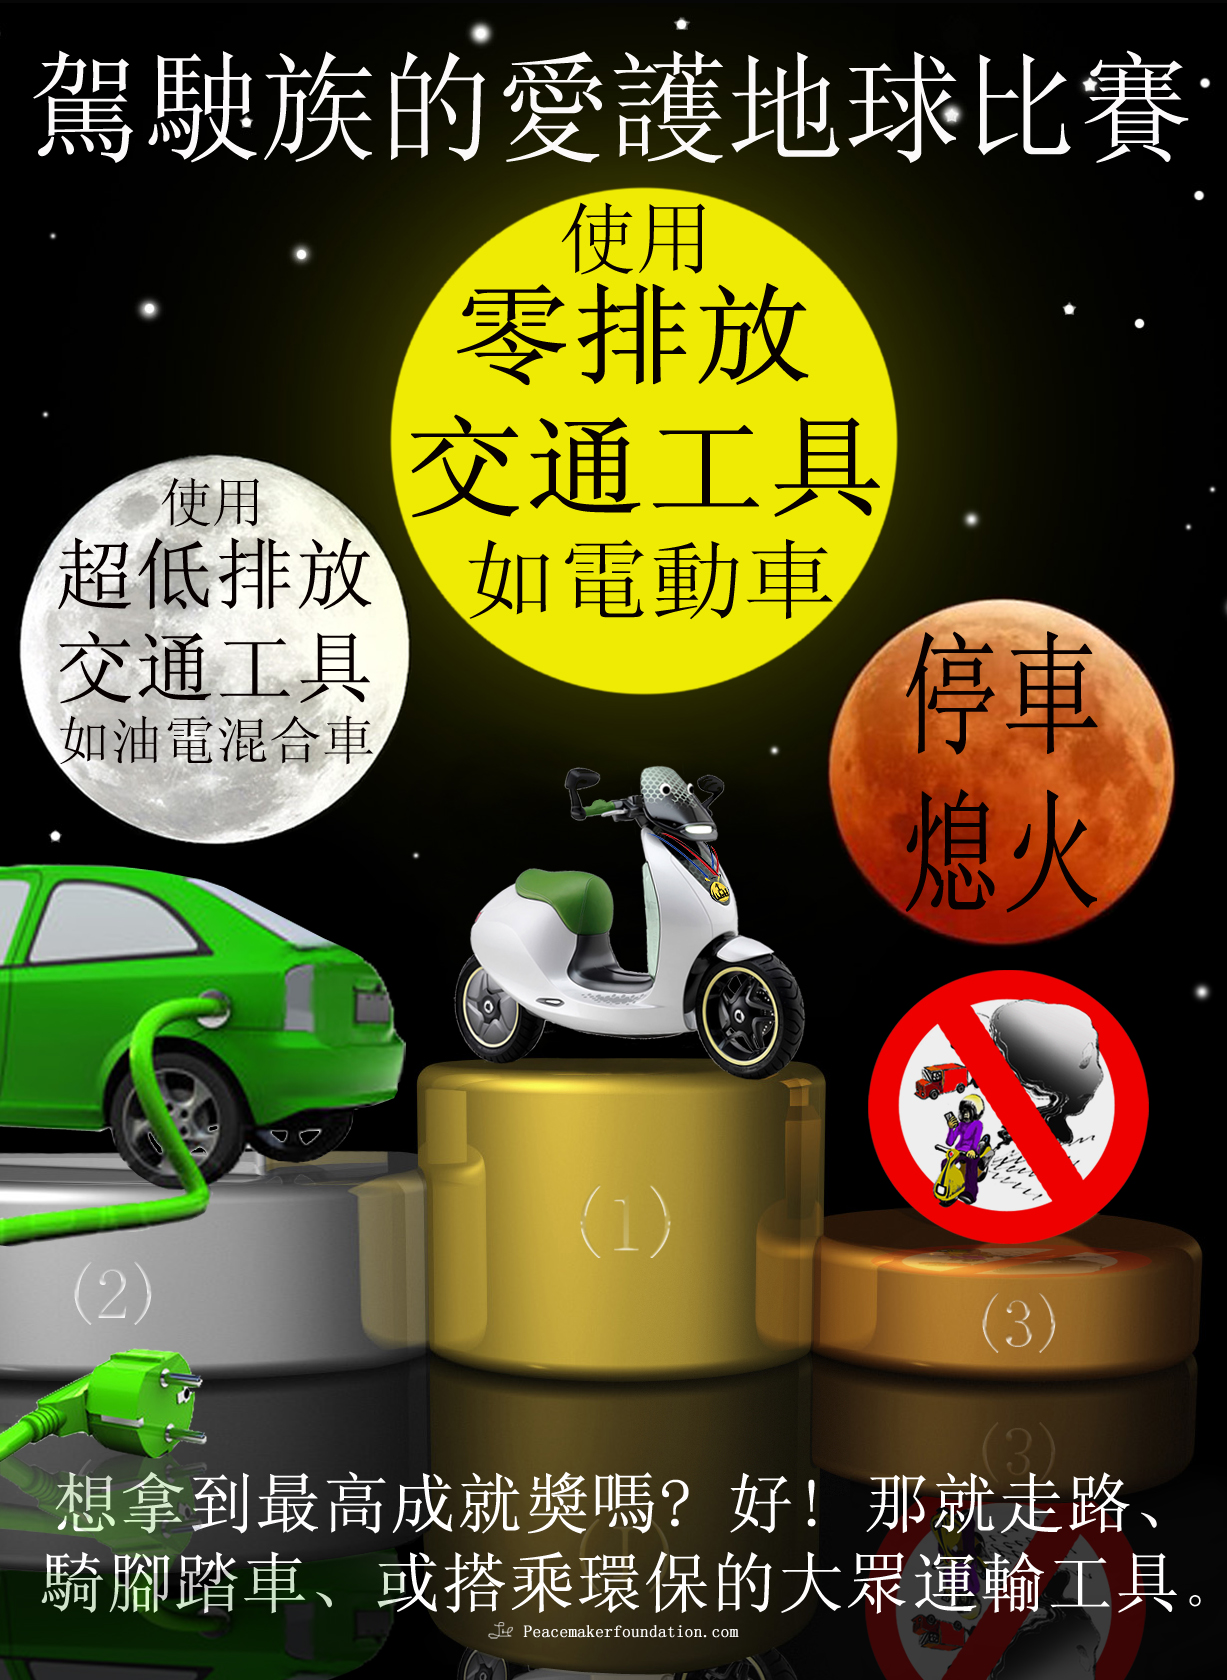 Save the Earth Competition, Electric vehicles, electric scooters, hybrid vehicles, low emission vehicles, don't idle, public transport